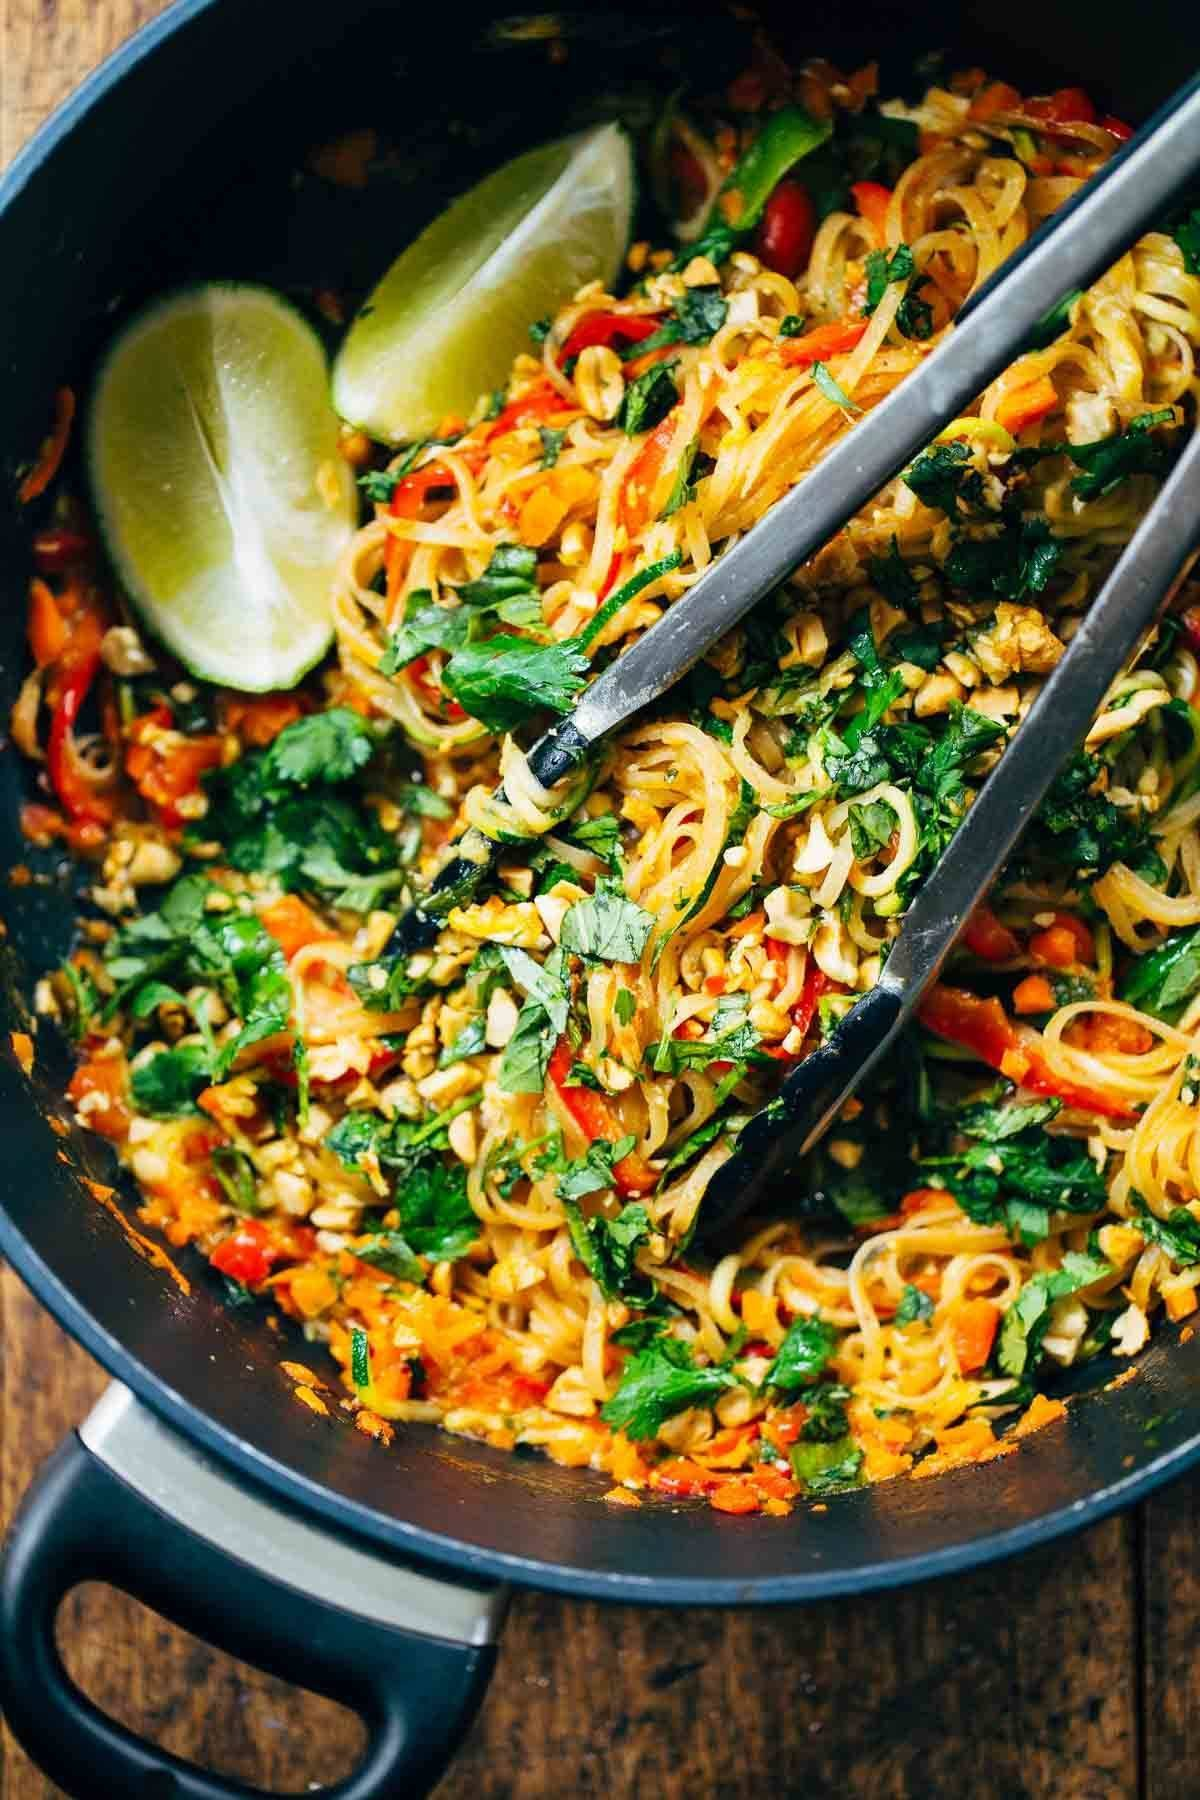 Rainbow Vegetarian Pad Thai with a simple five ingredient Pad Thai sauce - adaptable to any veggies you have on hand! So easy and delicious! | pinchofyum.com